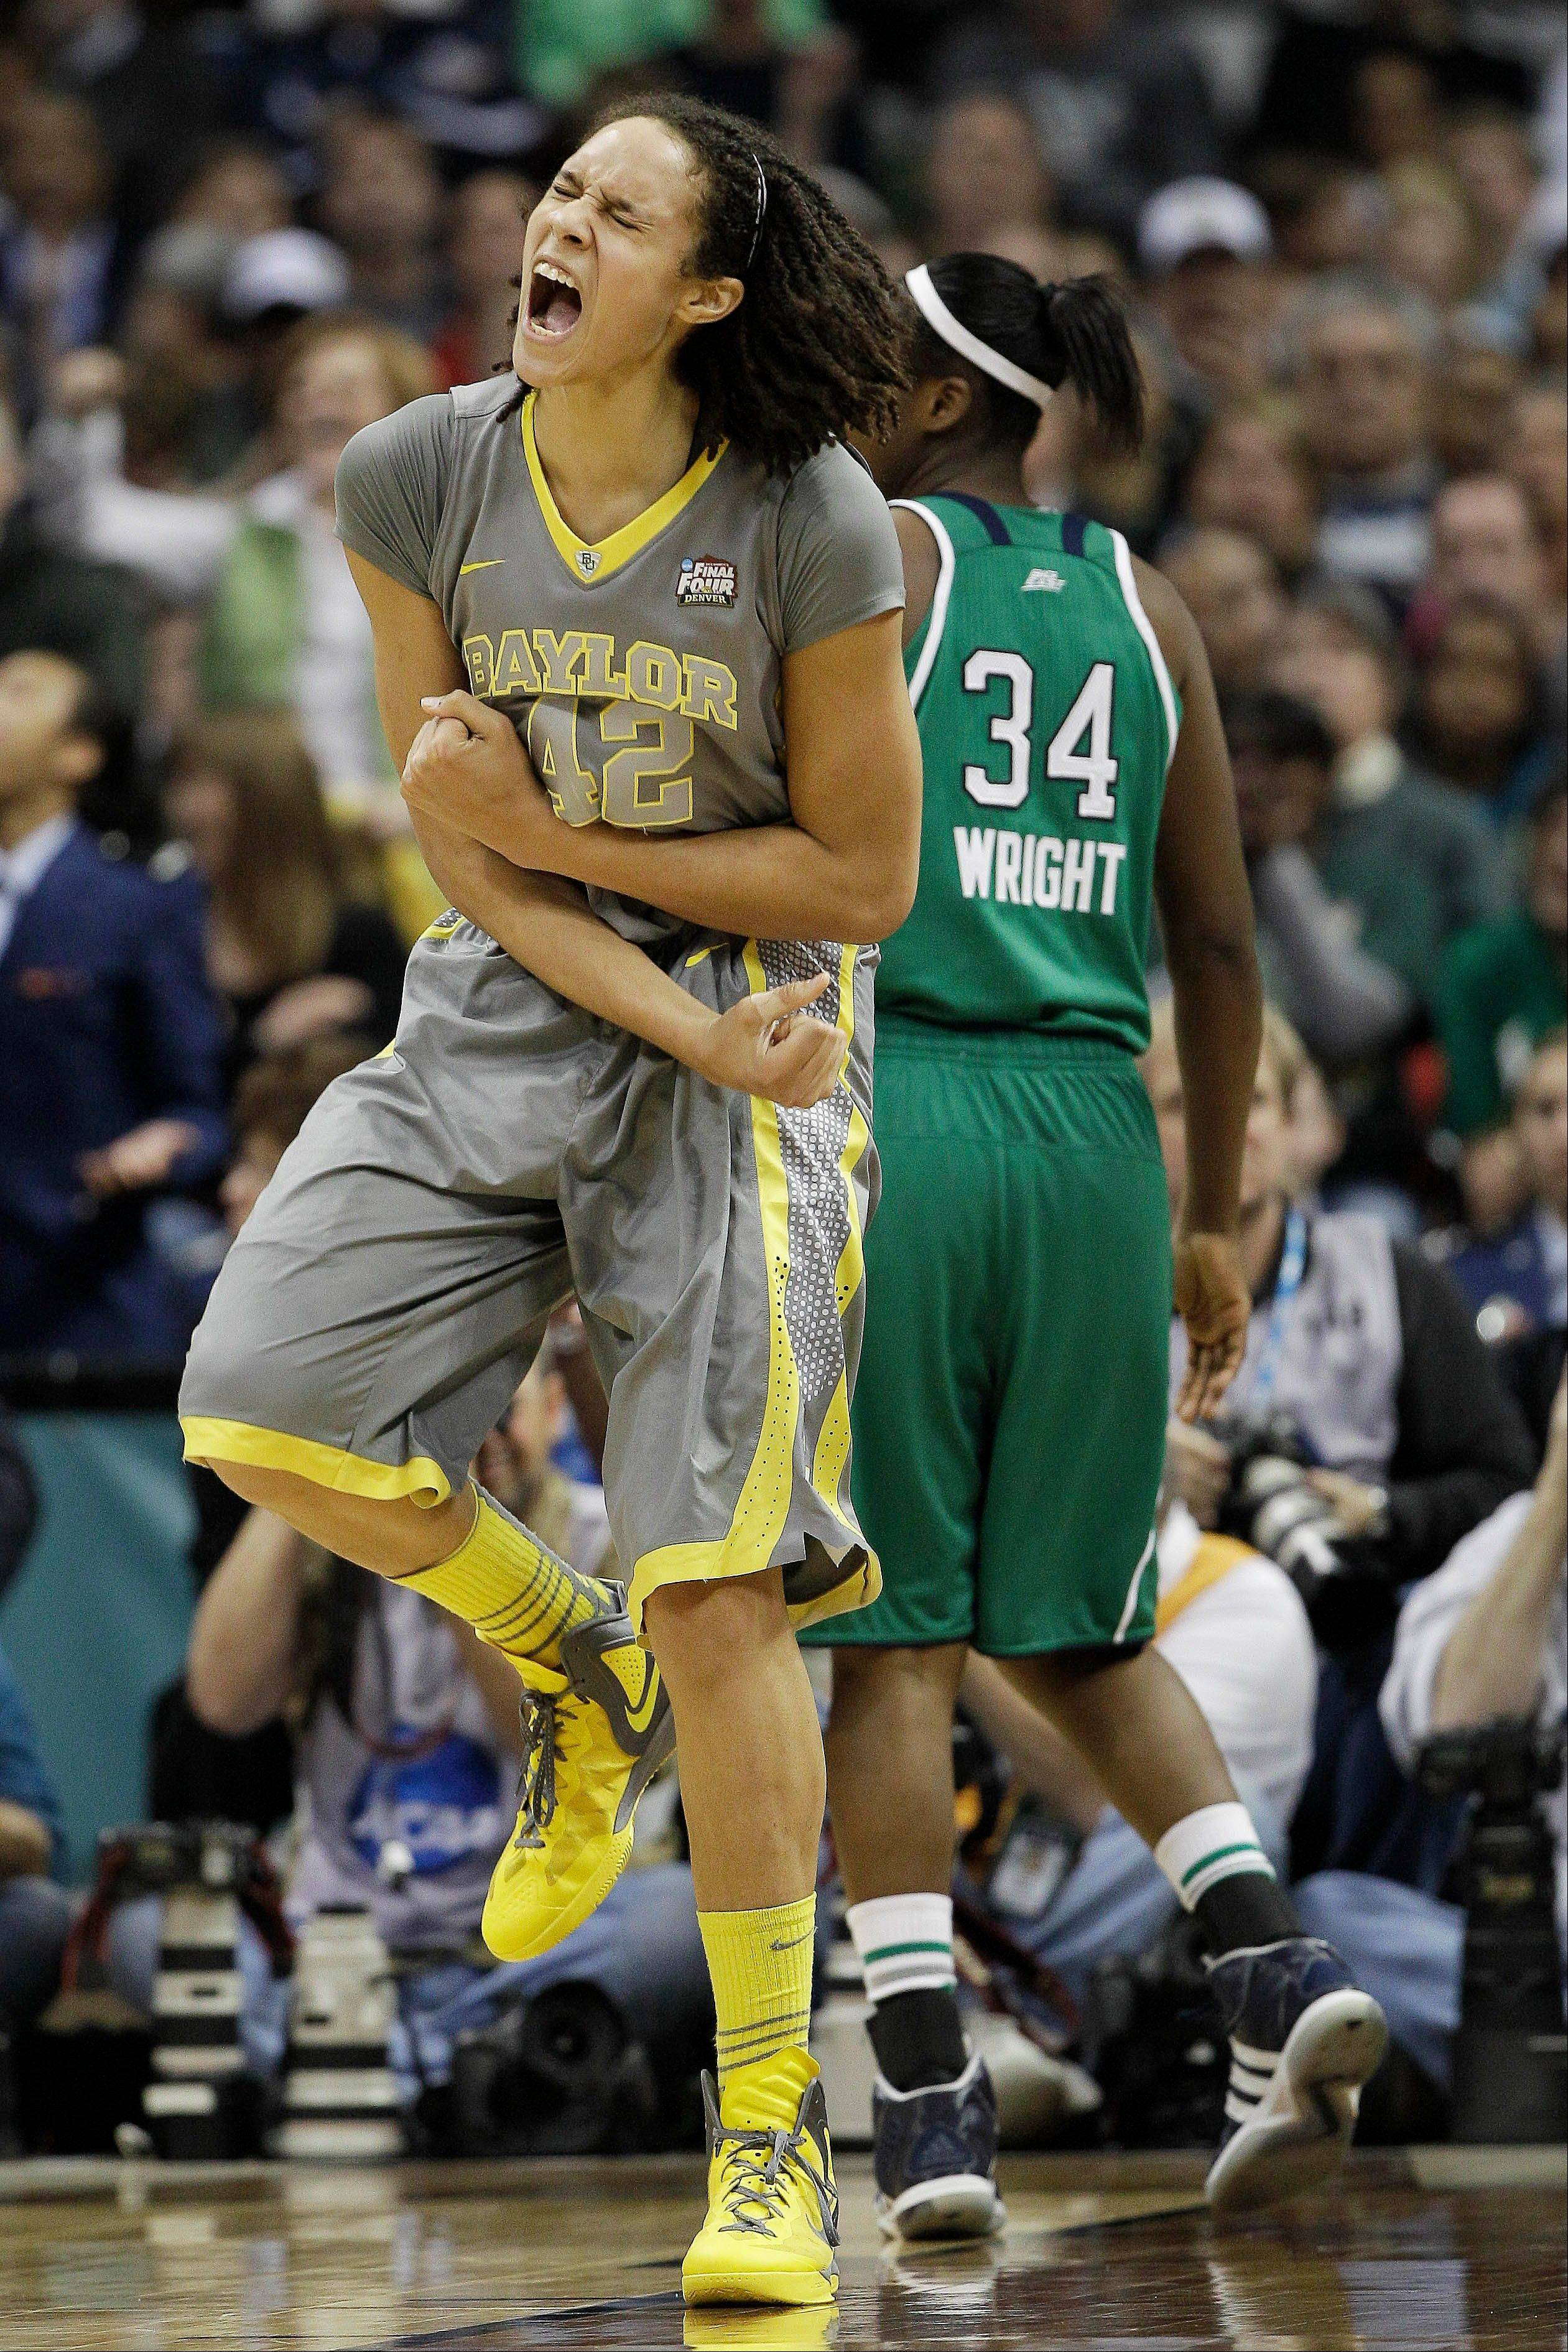 Baylor center Brittney Griner figures to be taken by the Phoenix Mercury with the top pick in the WNBA draft next year. But the Chicago Sky could move up if the Mercury decides to go in another direction.